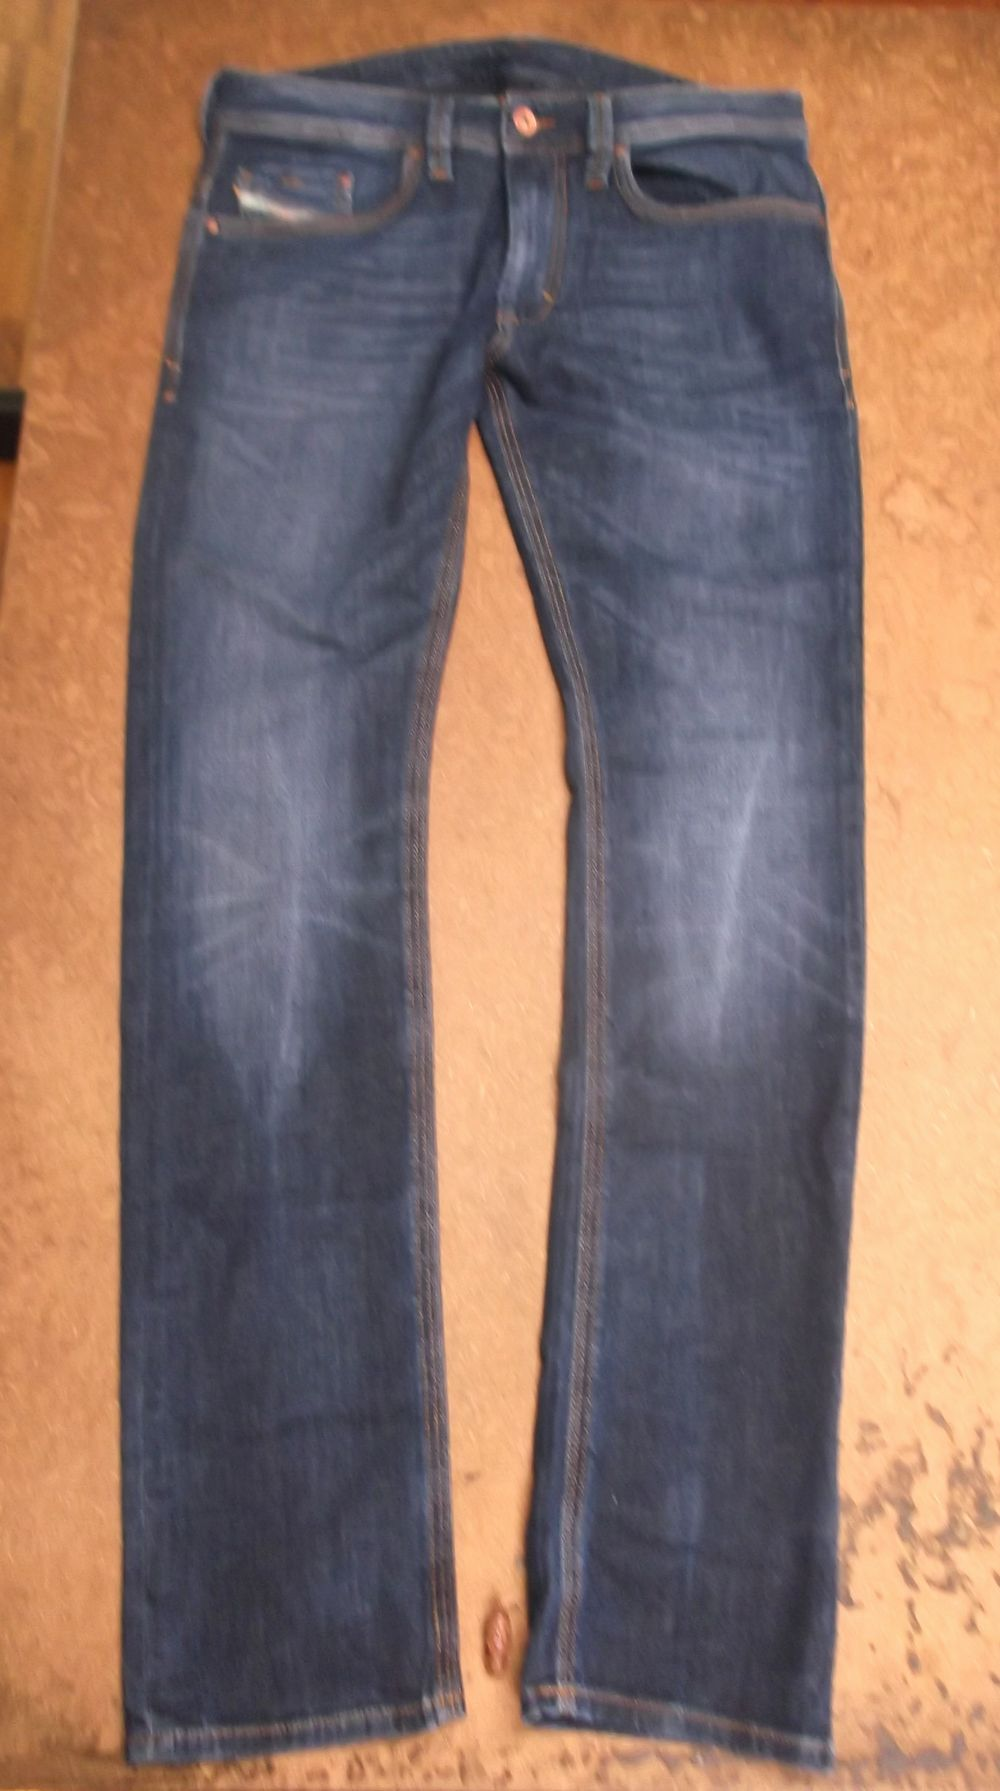 jeans1193-1